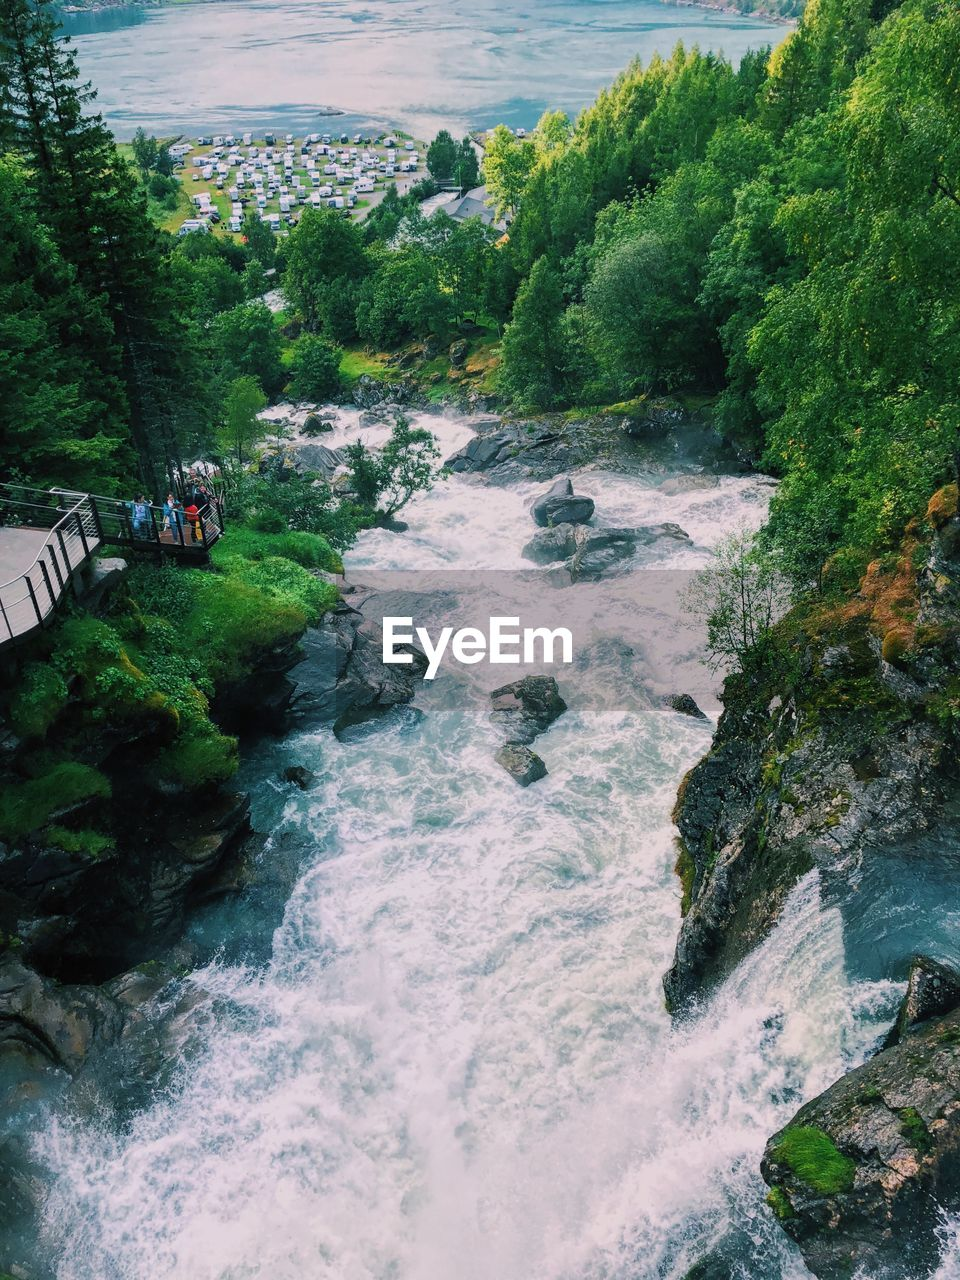 water, scenics - nature, beauty in nature, plant, motion, river, flowing water, nature, tree, day, aquatic sport, transportation, waterfall, sport, flowing, growth, built structure, architecture, no people, outdoors, power in nature